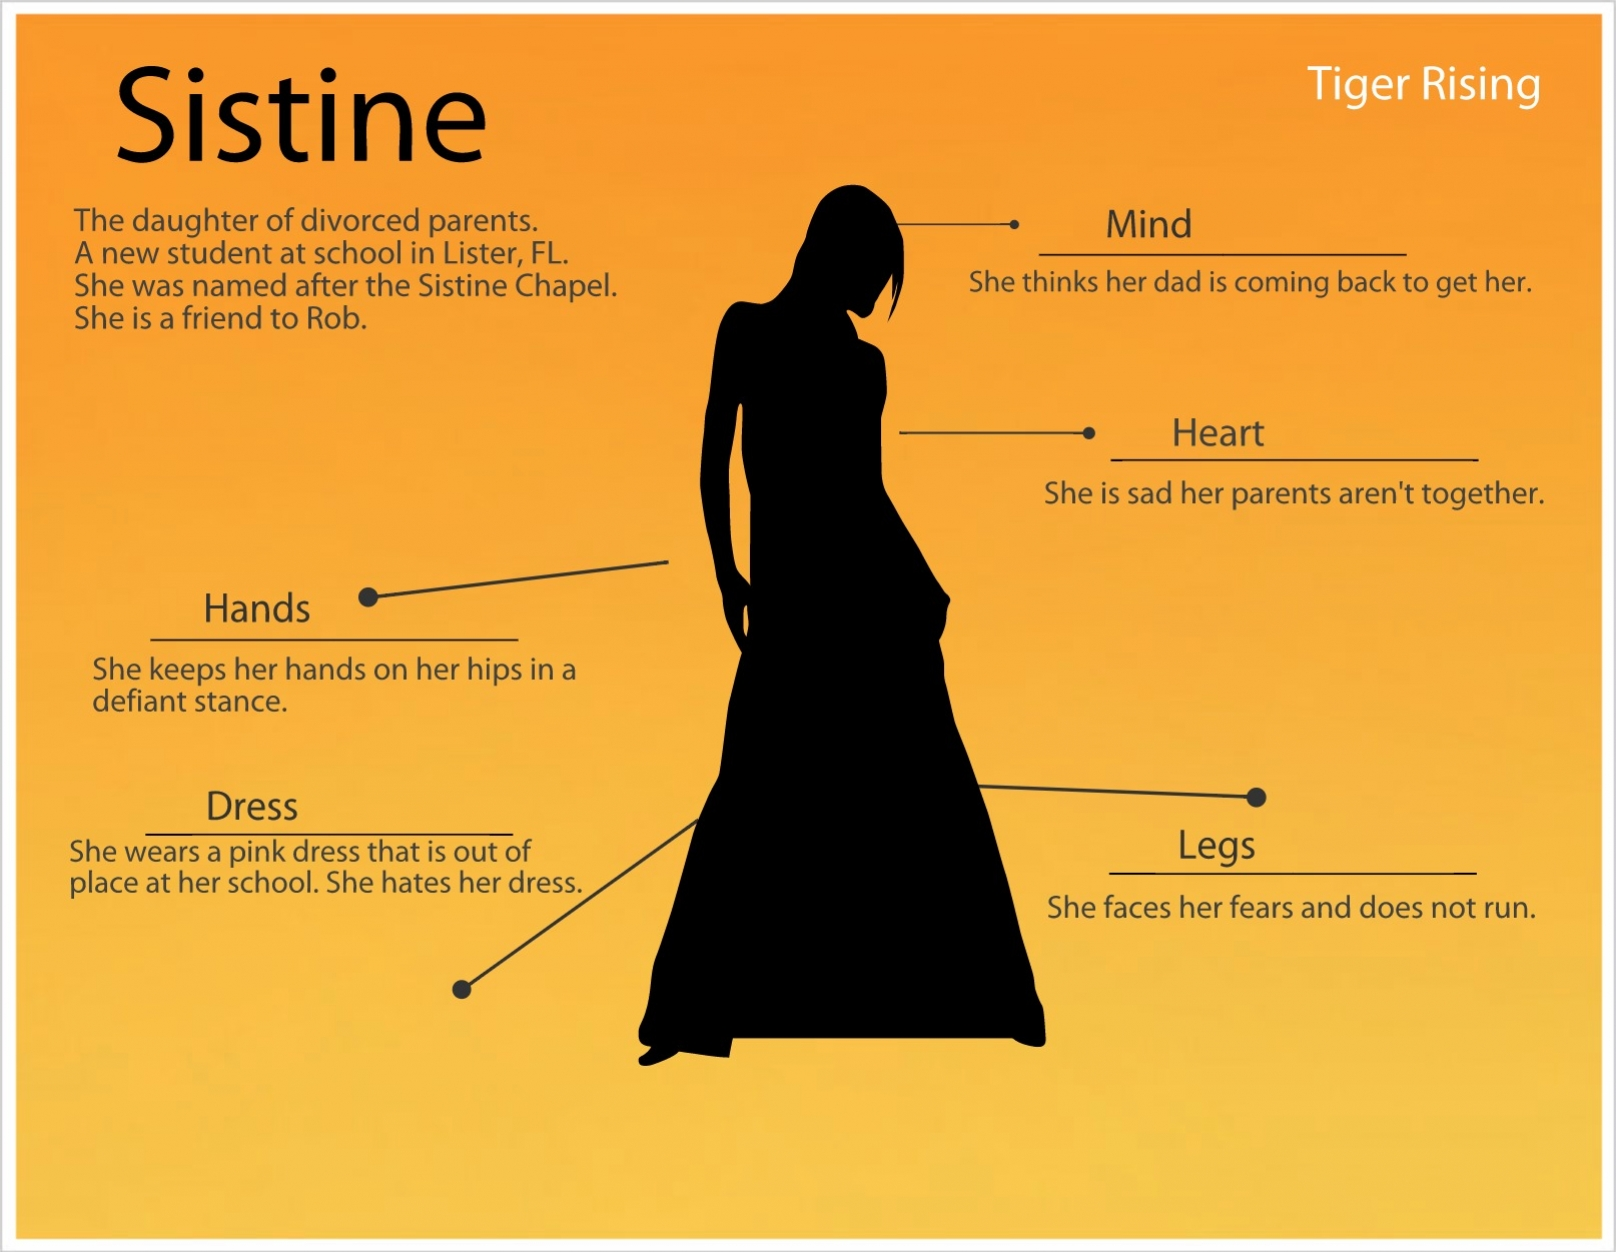 Character Sketches in Tiger Rising | My Learning Blog